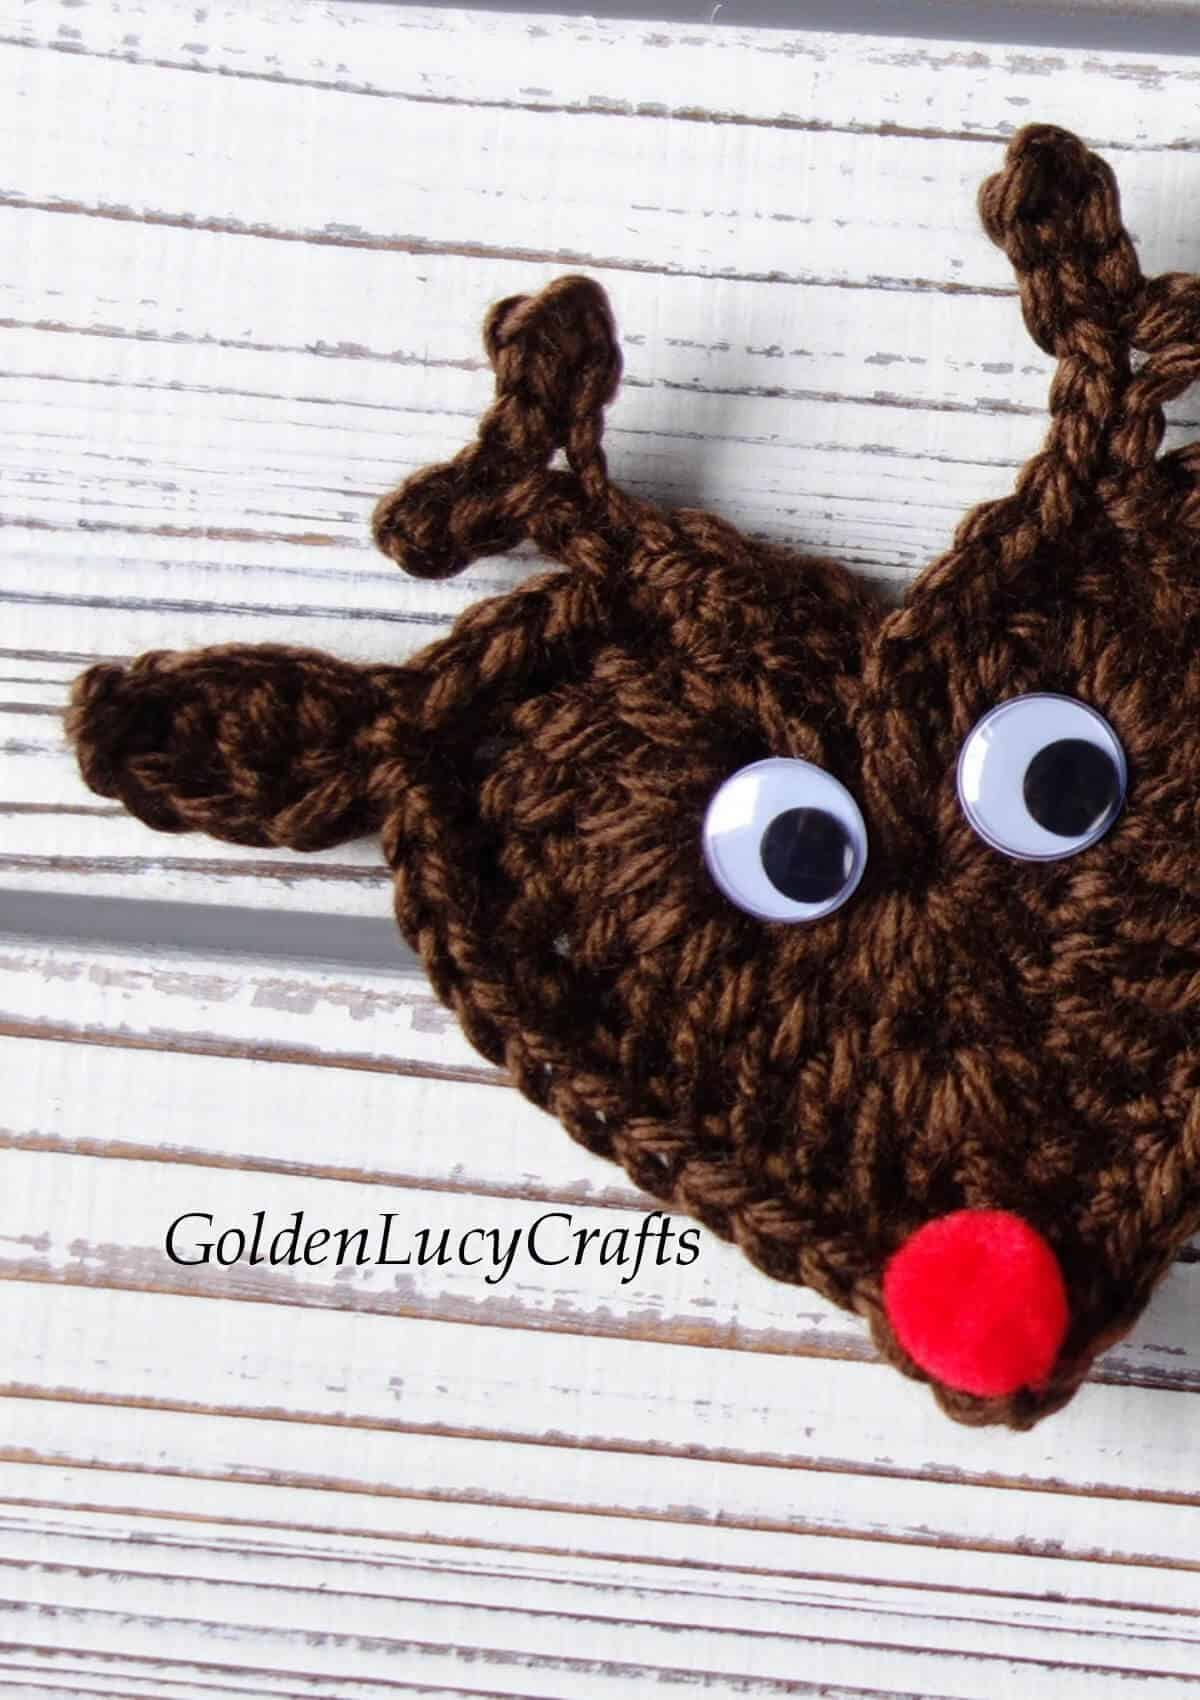 Crocheted reindeer applique close up picture.